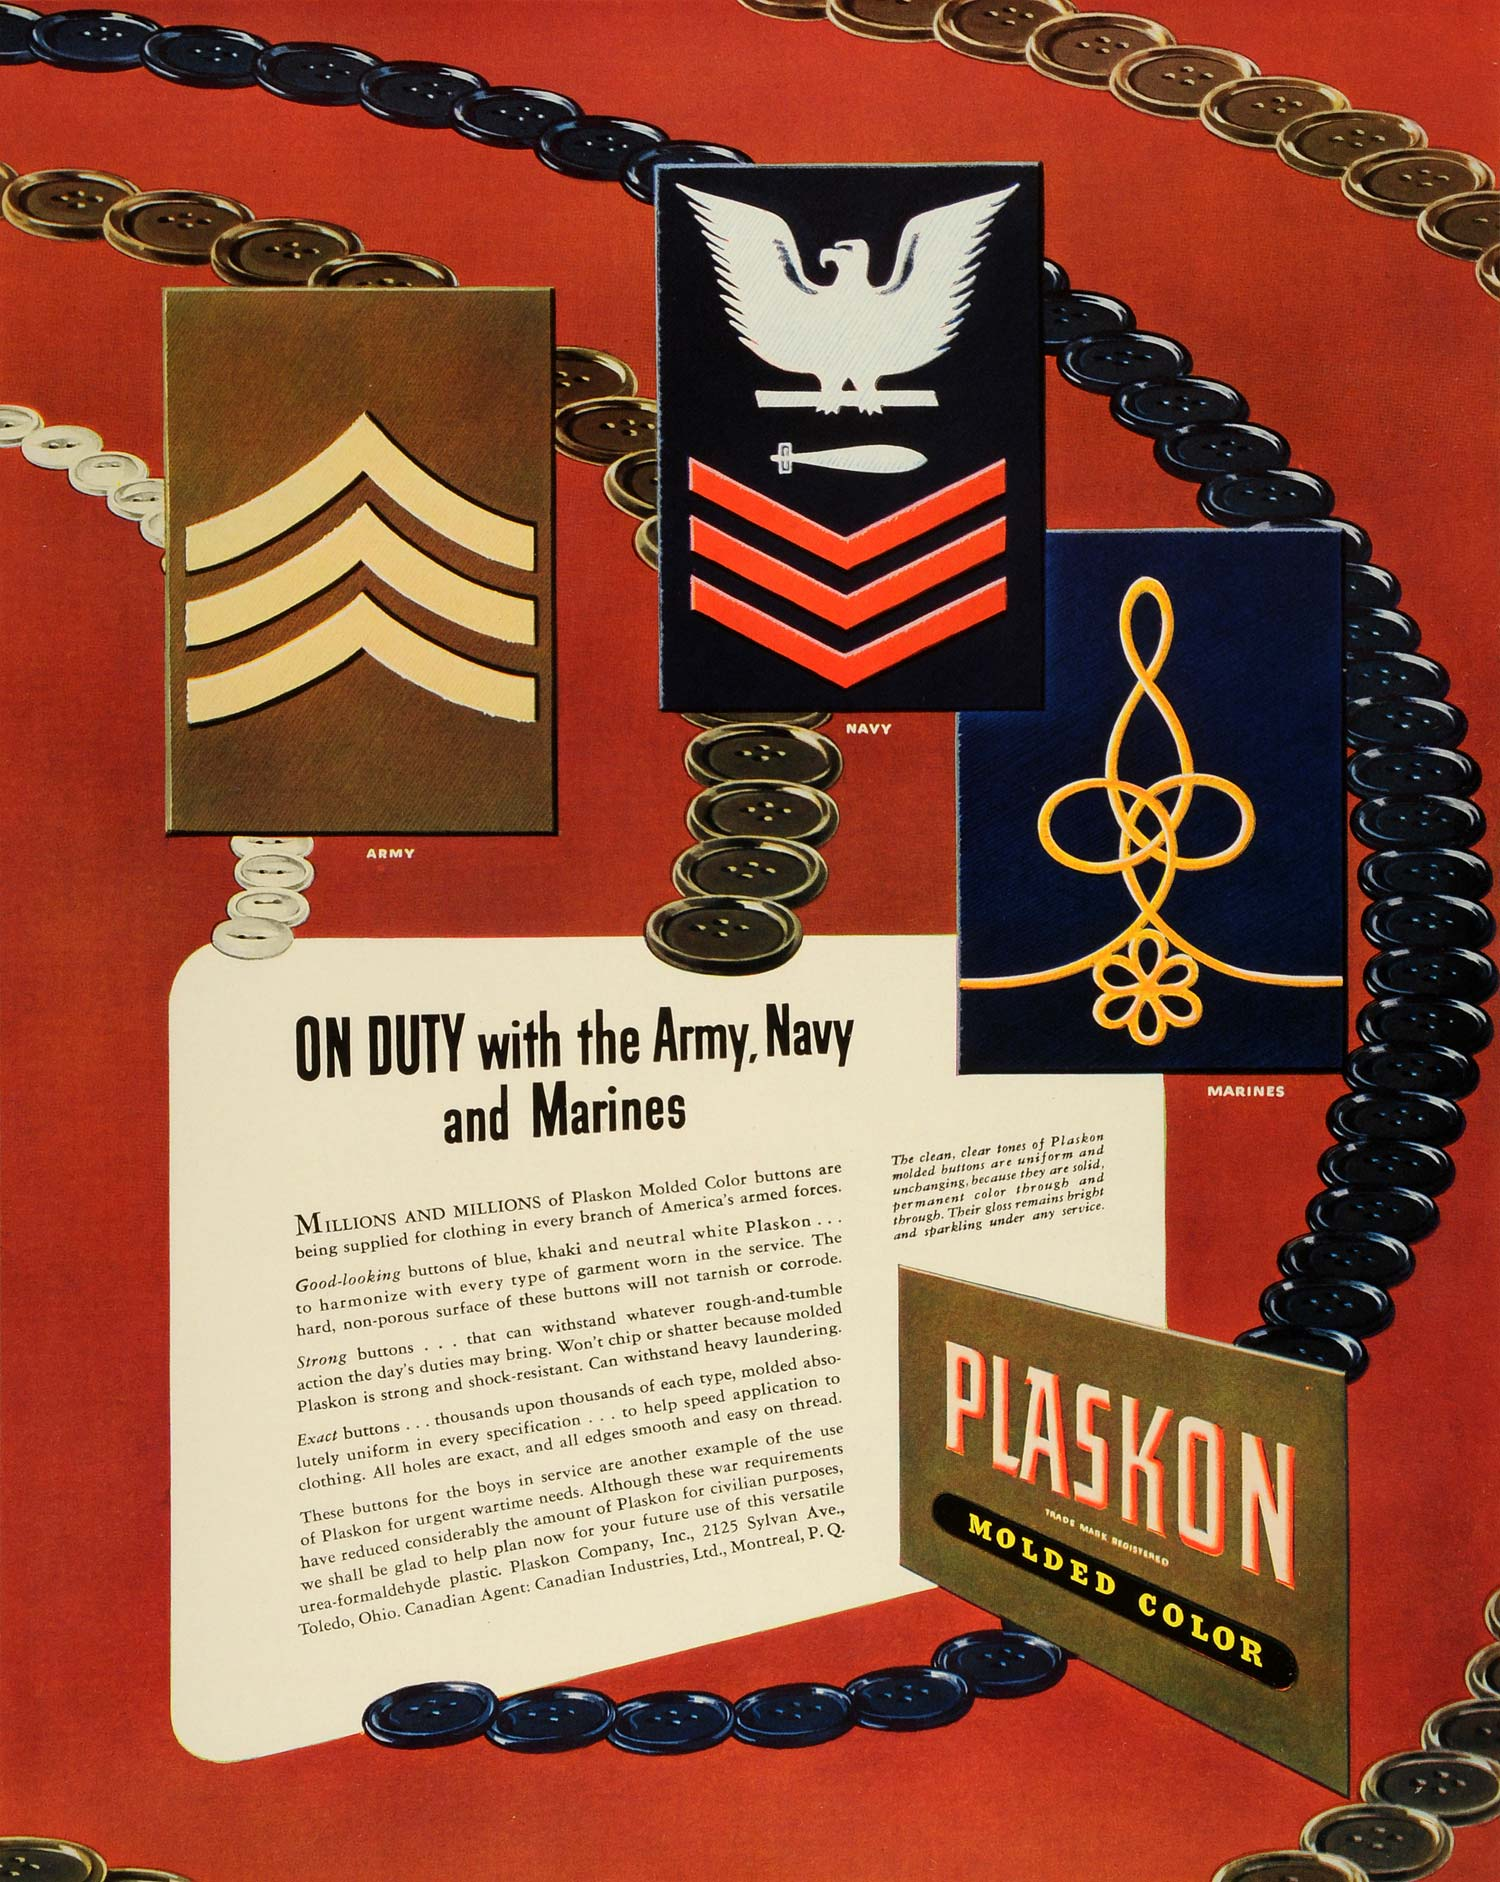 1942 Ad Plaskon Molded Color Military Clothing Buttons Army Navy Marines FZ6